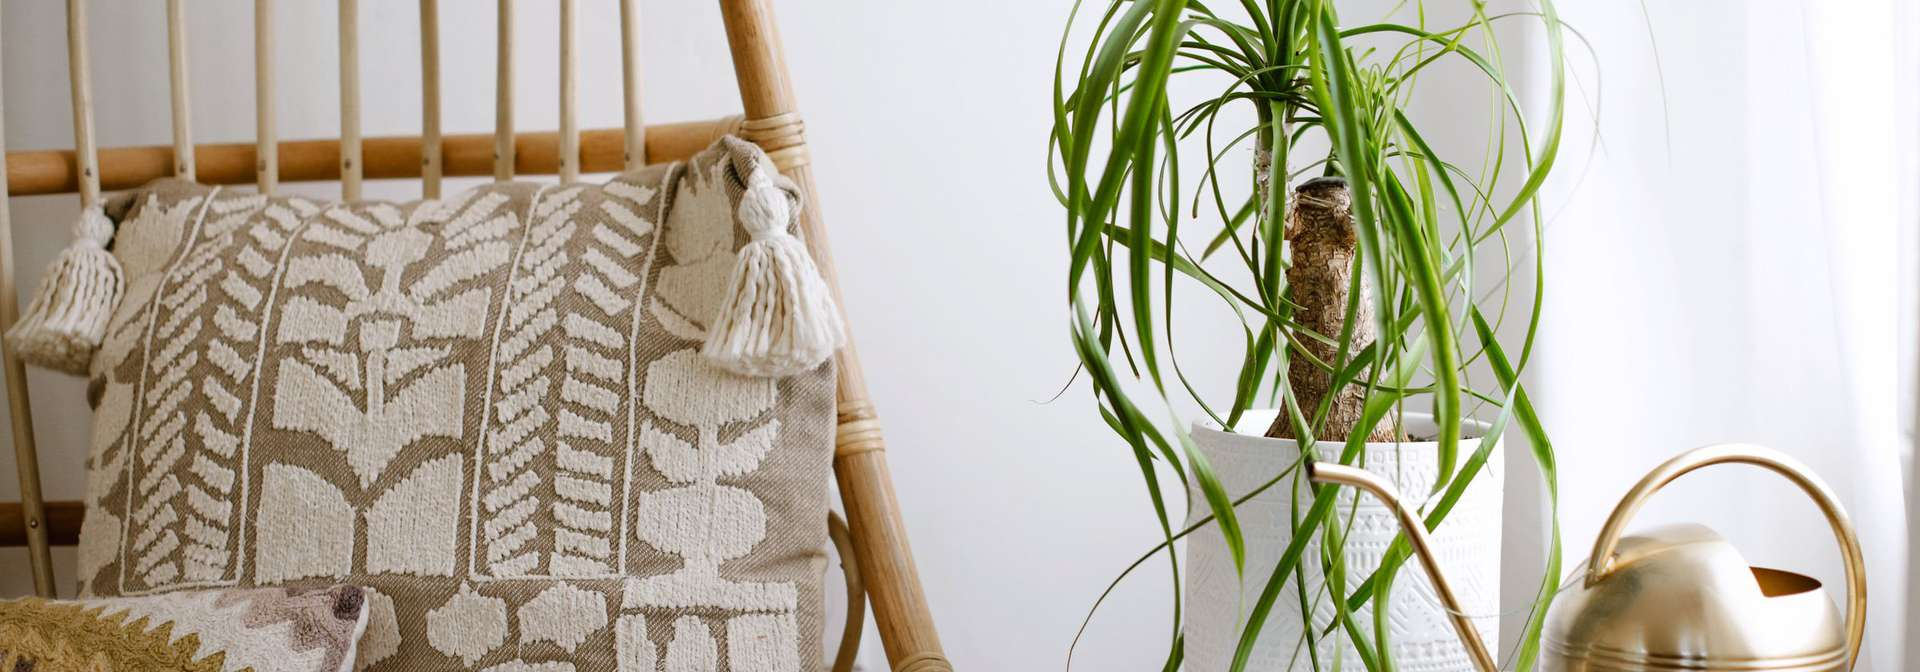 Ponytail palm tree in white pot near gold watering can and wicker chair with pillows